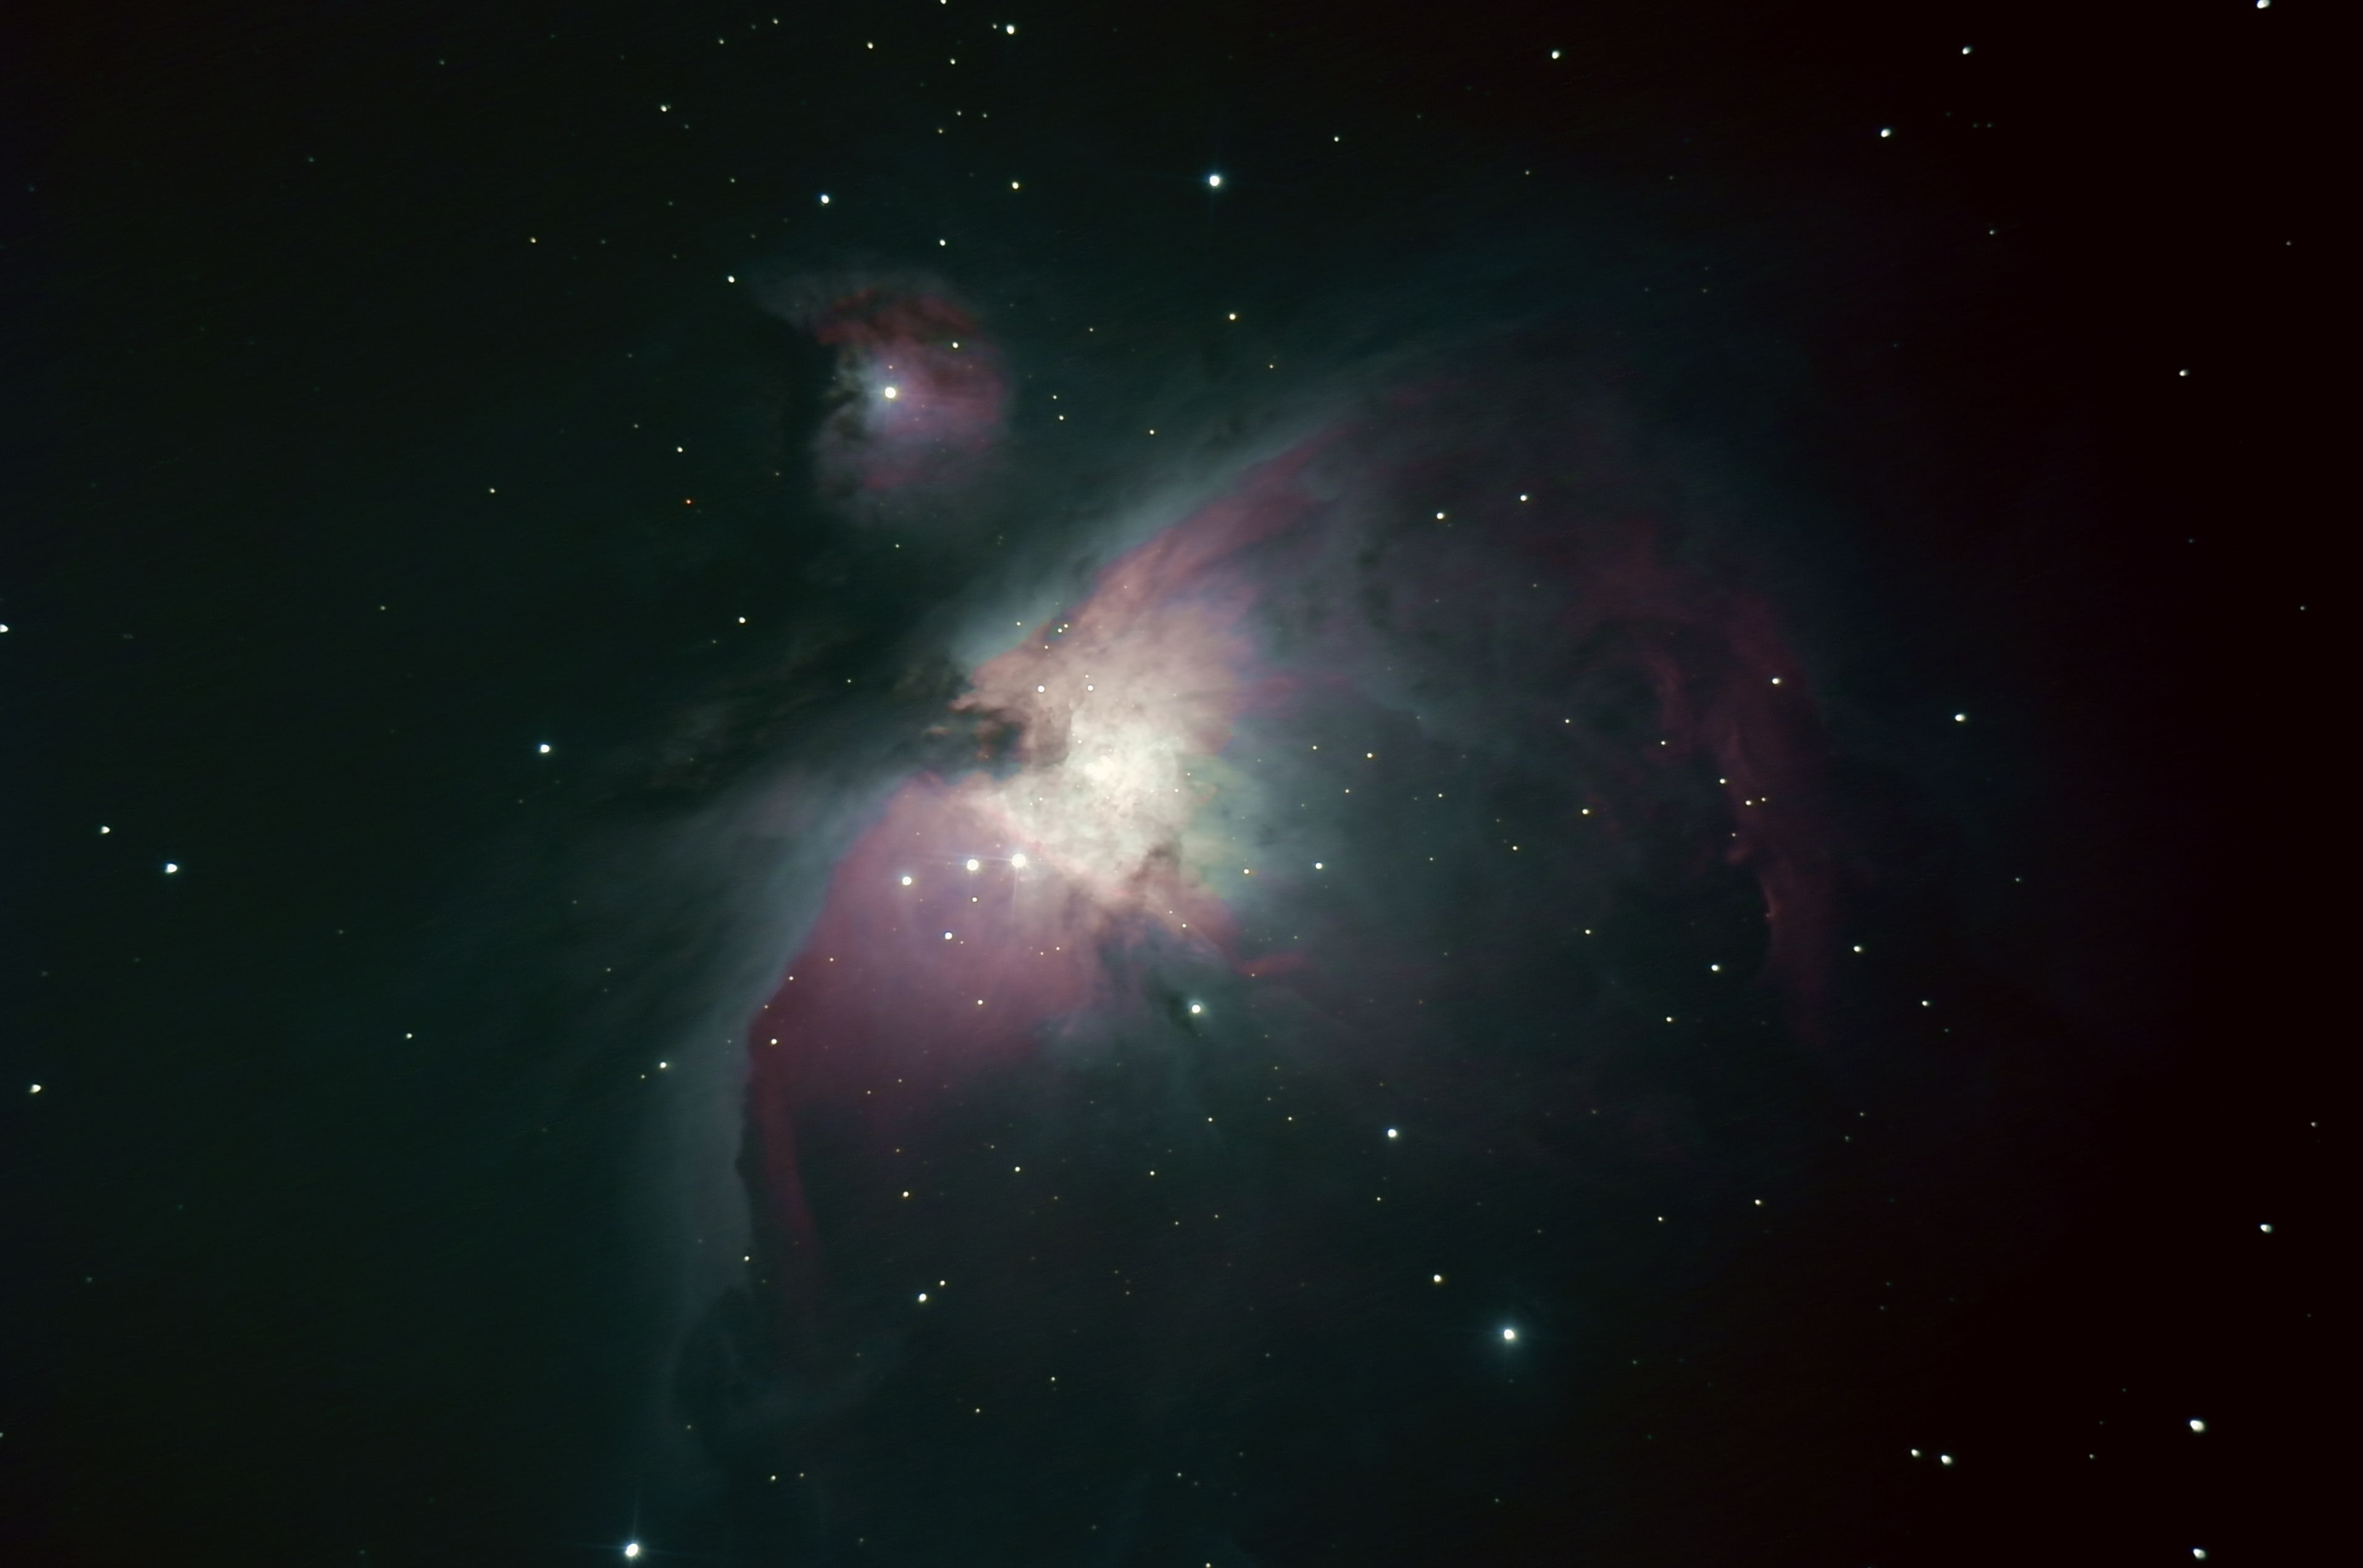 orion nebula distance from earth - HD3828×2540